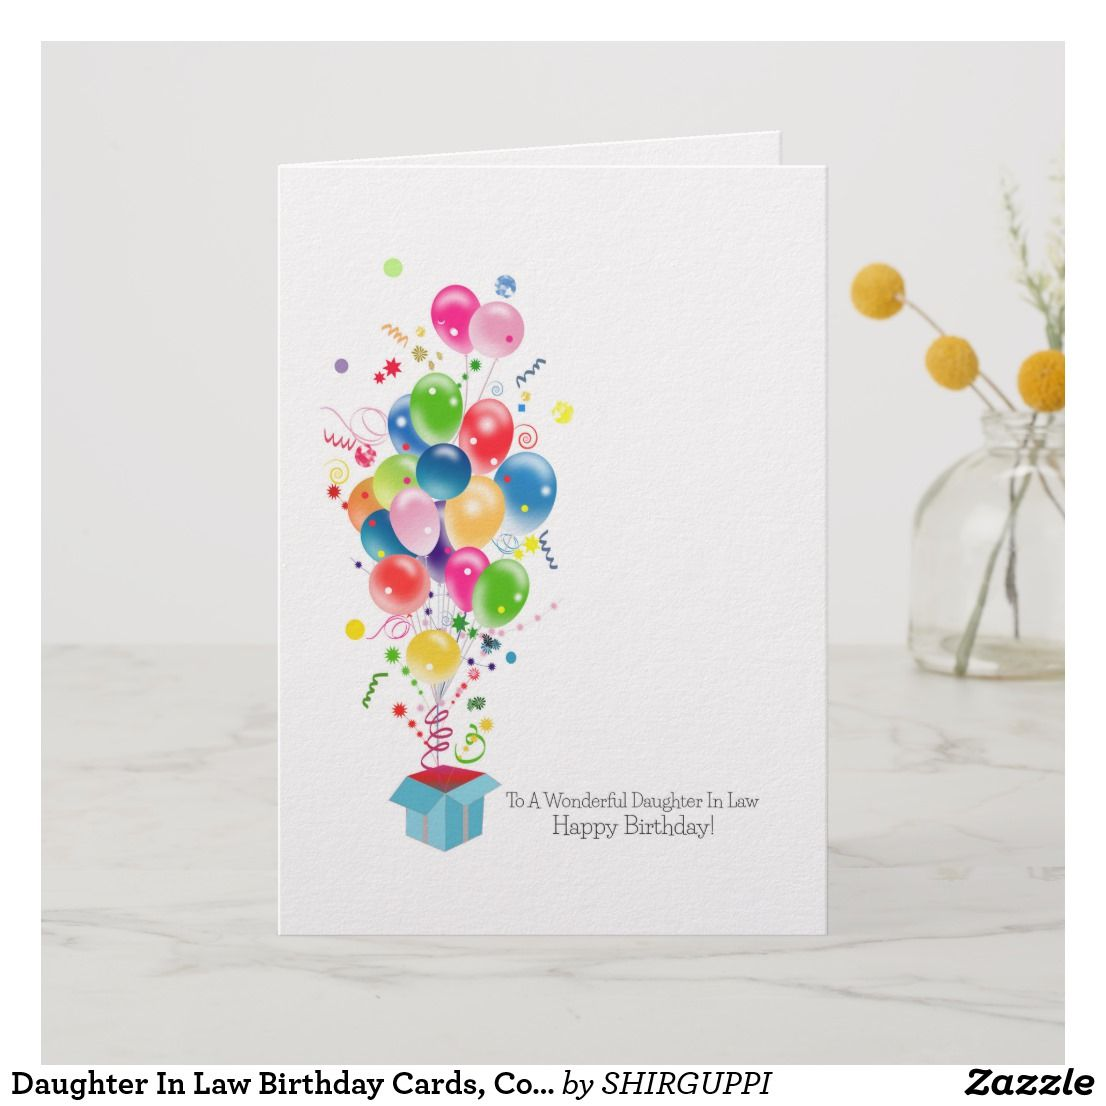 Daughter In Law Birthday Cards Colorful Balloons Card Birthday